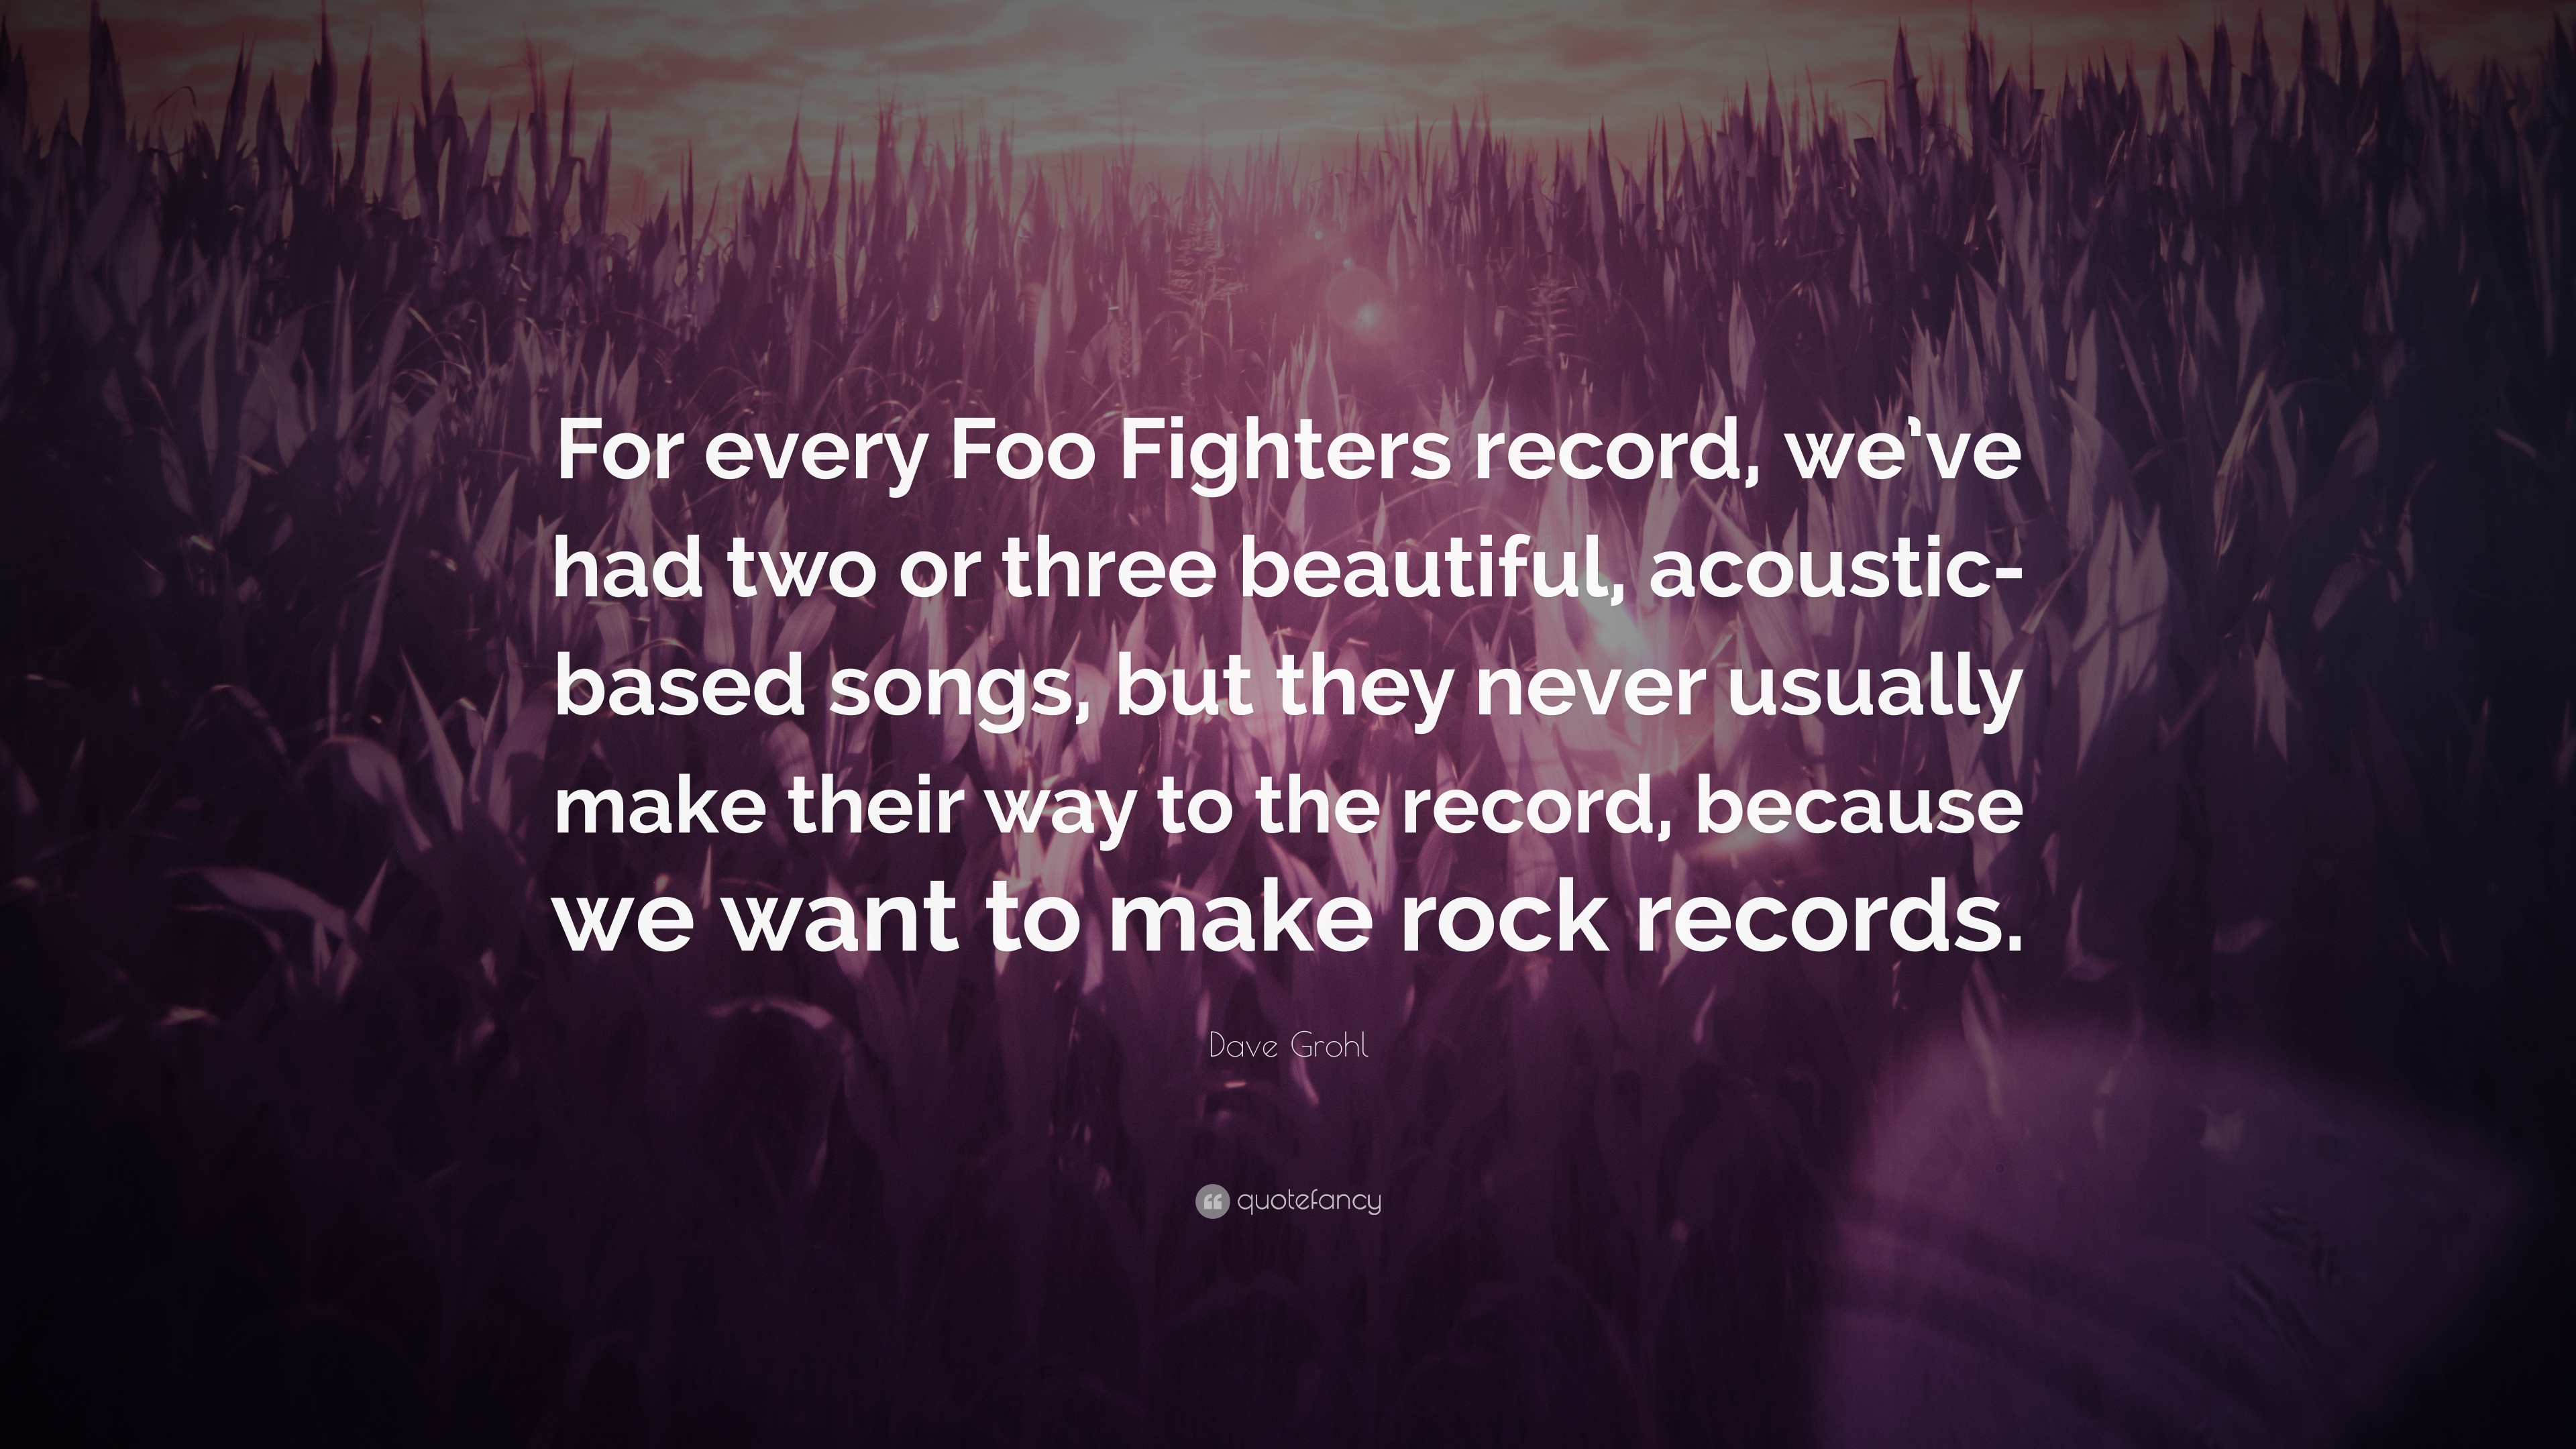 Dave Grohl Quotes (153 wallpapers) - Quotefancy